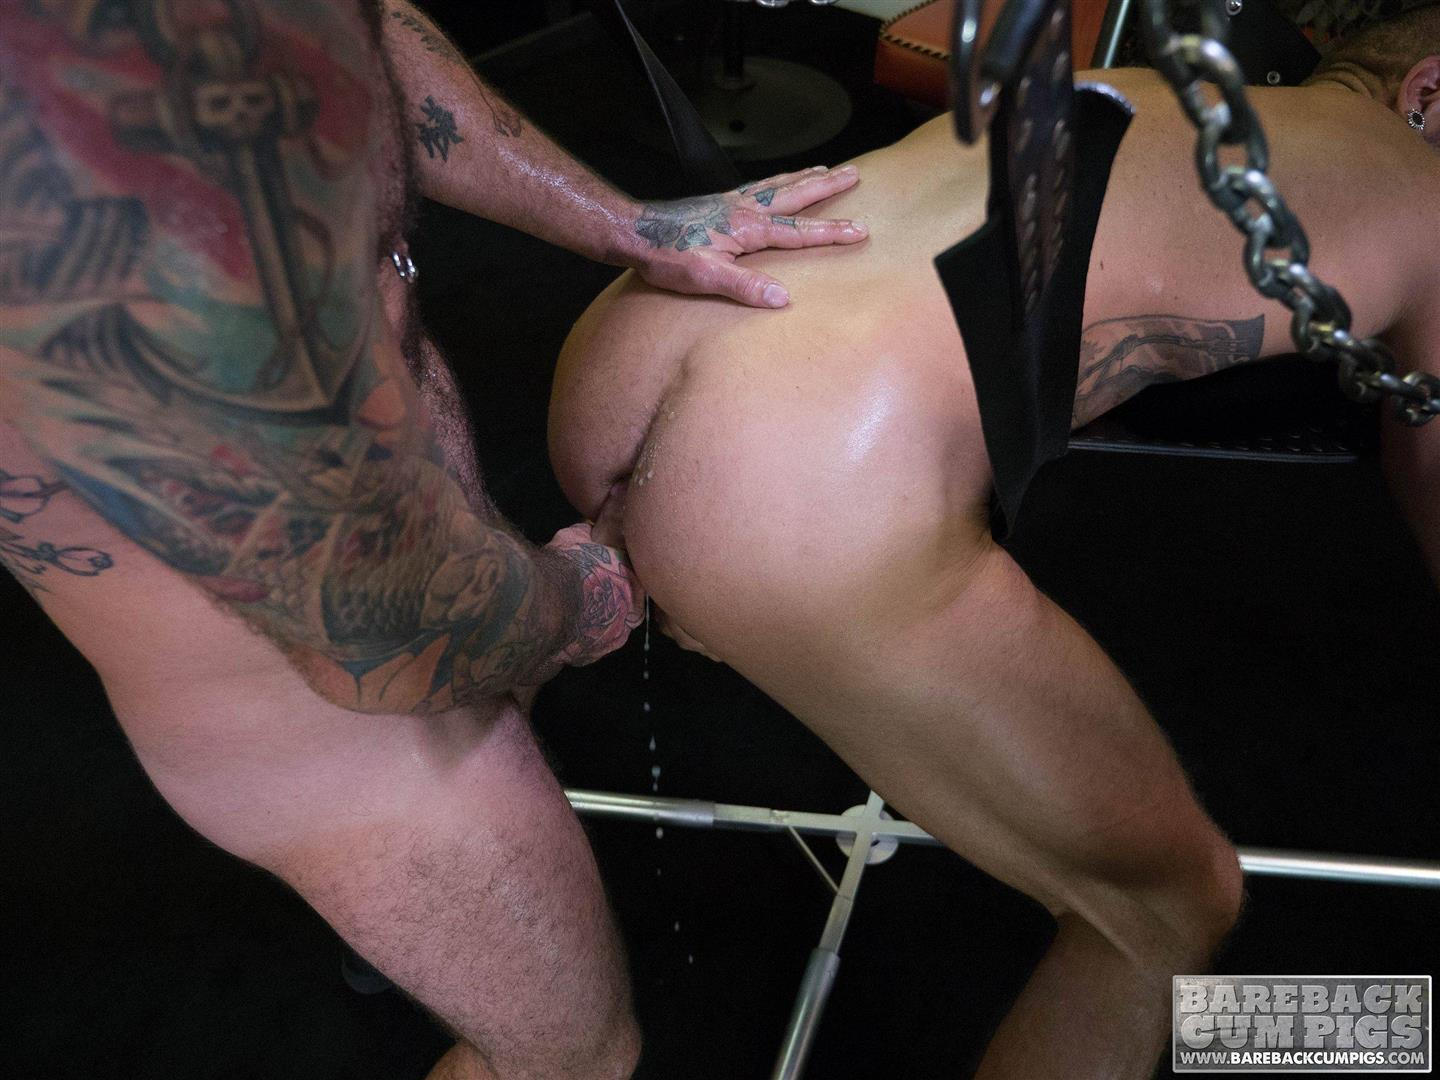 Bareback Cum Pigs Dolf Dietrich and Rogue Status Breeding 18 Dolf Dietrich Gets Bareback Fucked In A Sling By Rogue Status